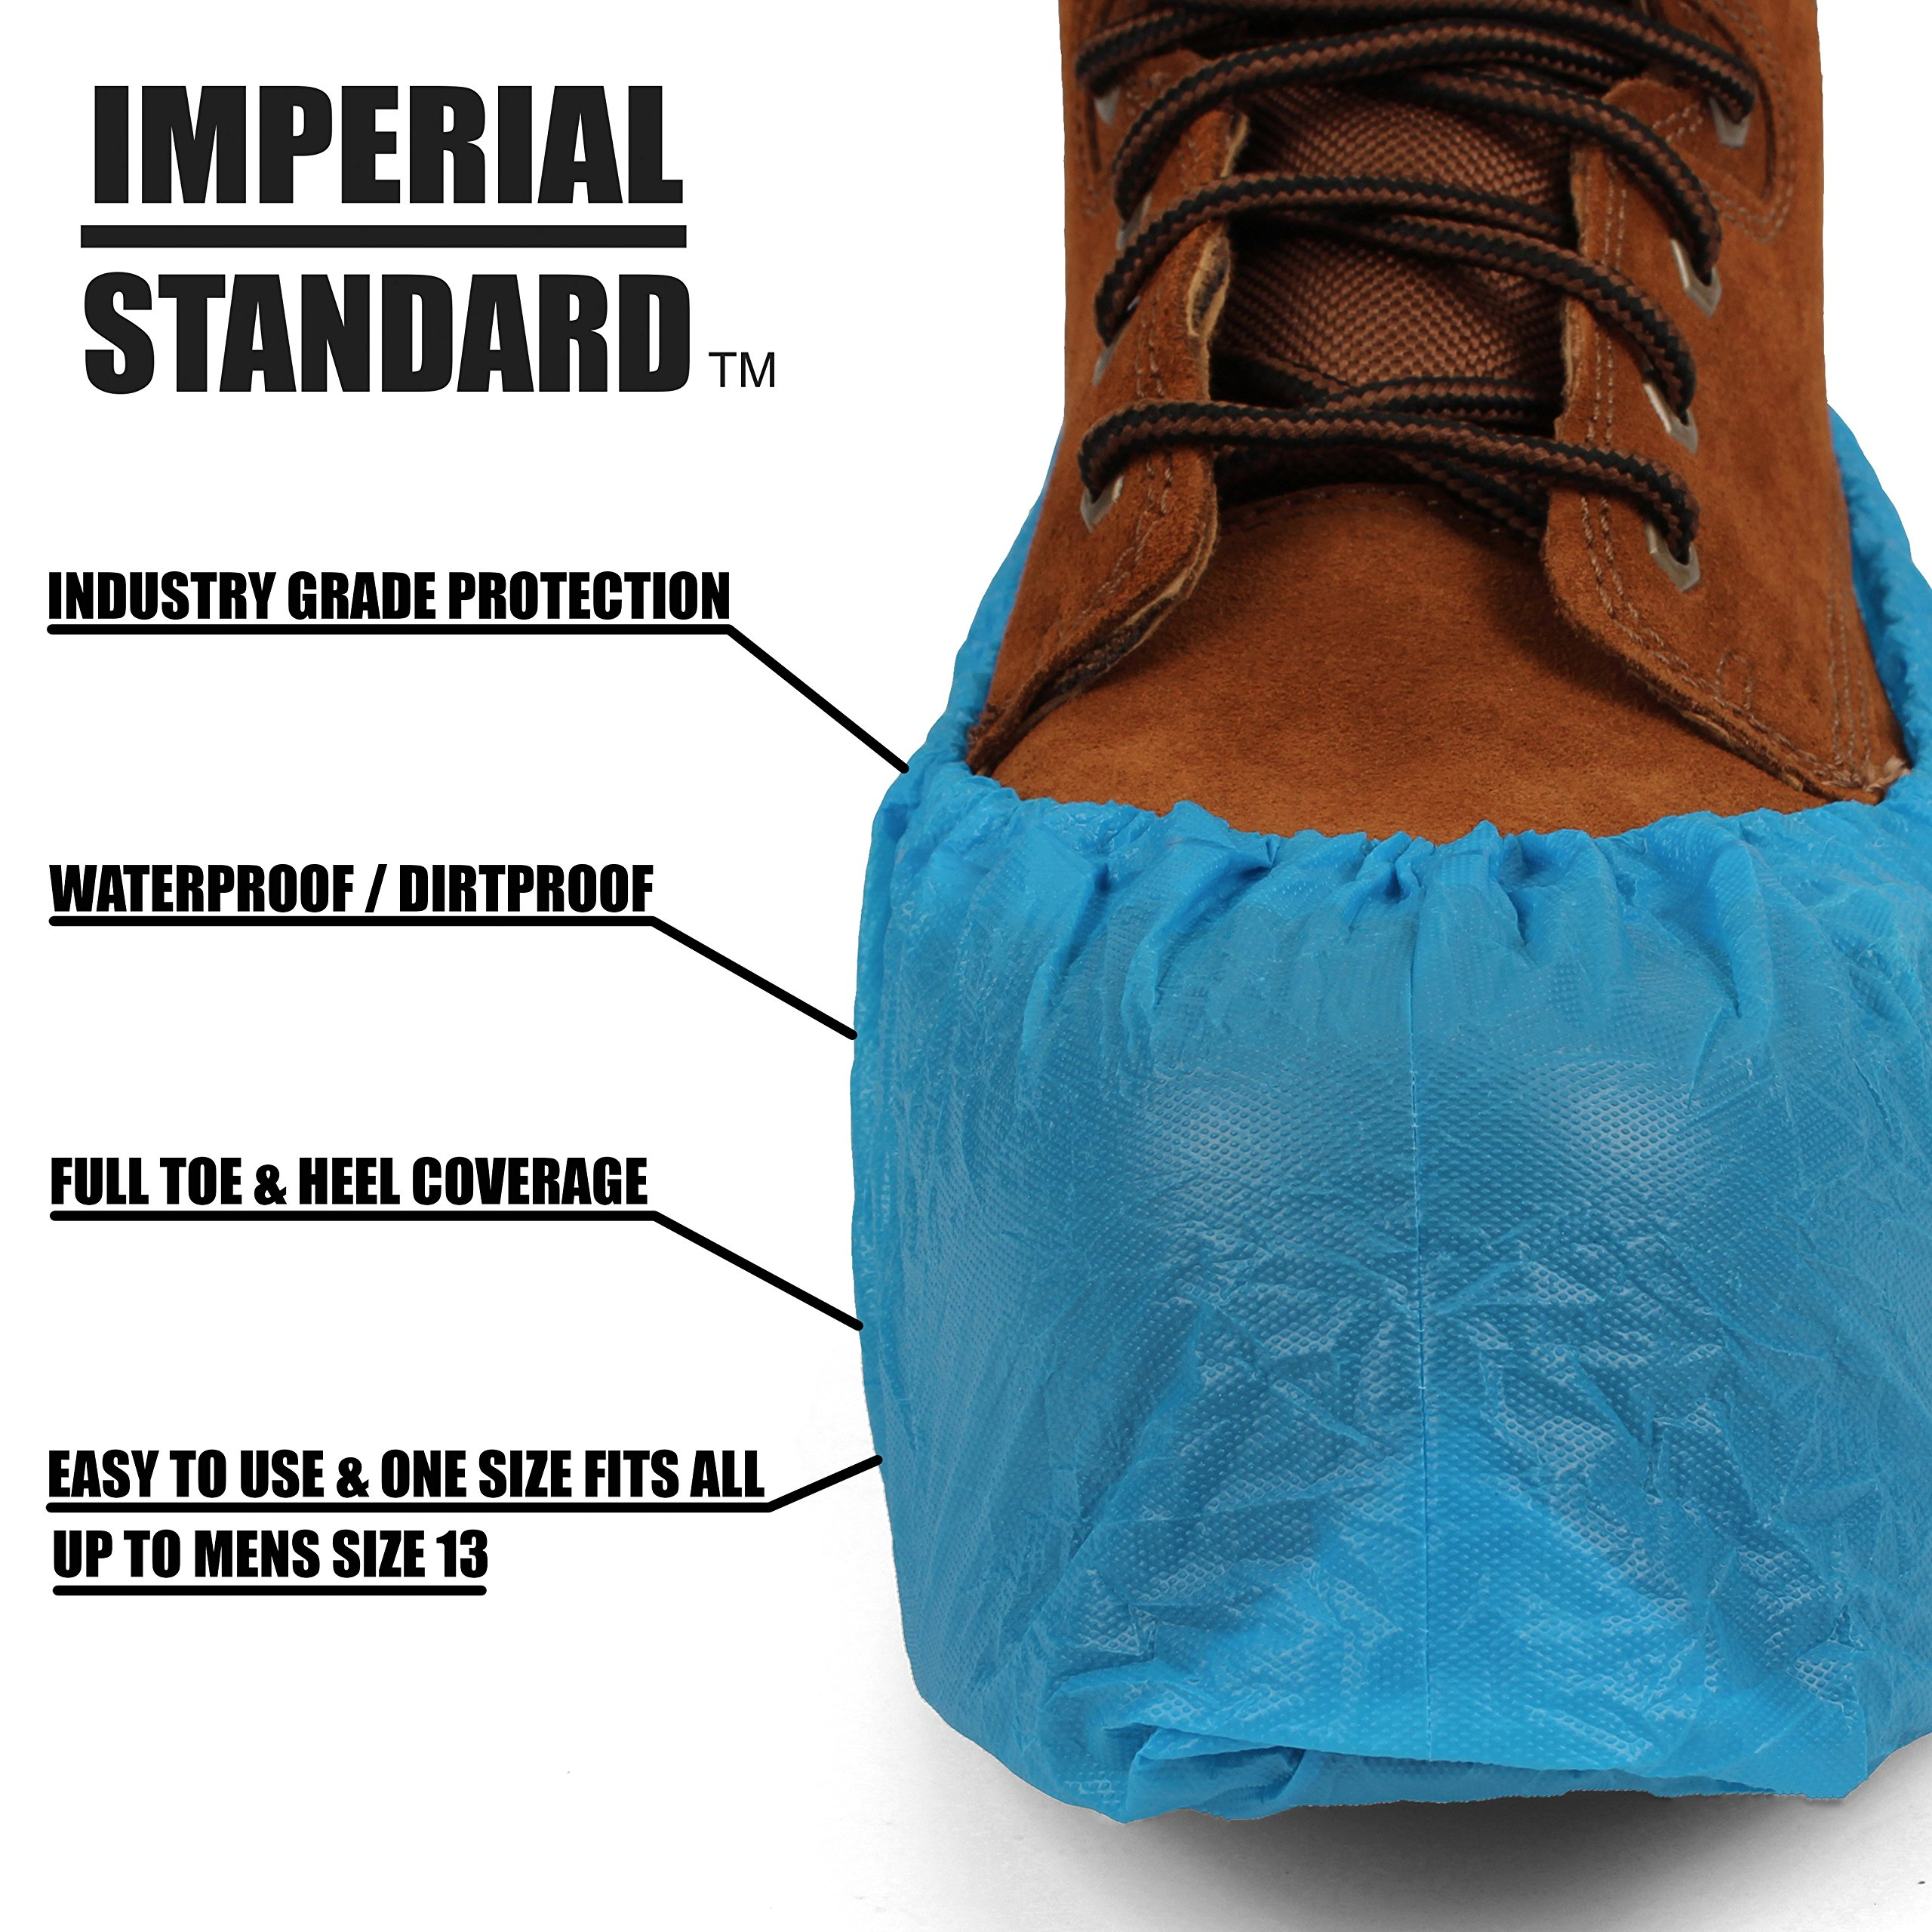 Waterproof Boot Covers for Professionals - XL Disposable Shoe Covers - Non-Slip Waterproof Shoe Protectors - Fits up to Size 13 Work Boot and Size 14 Shoe - (100 pack) by Imperial Standard (Image #3)